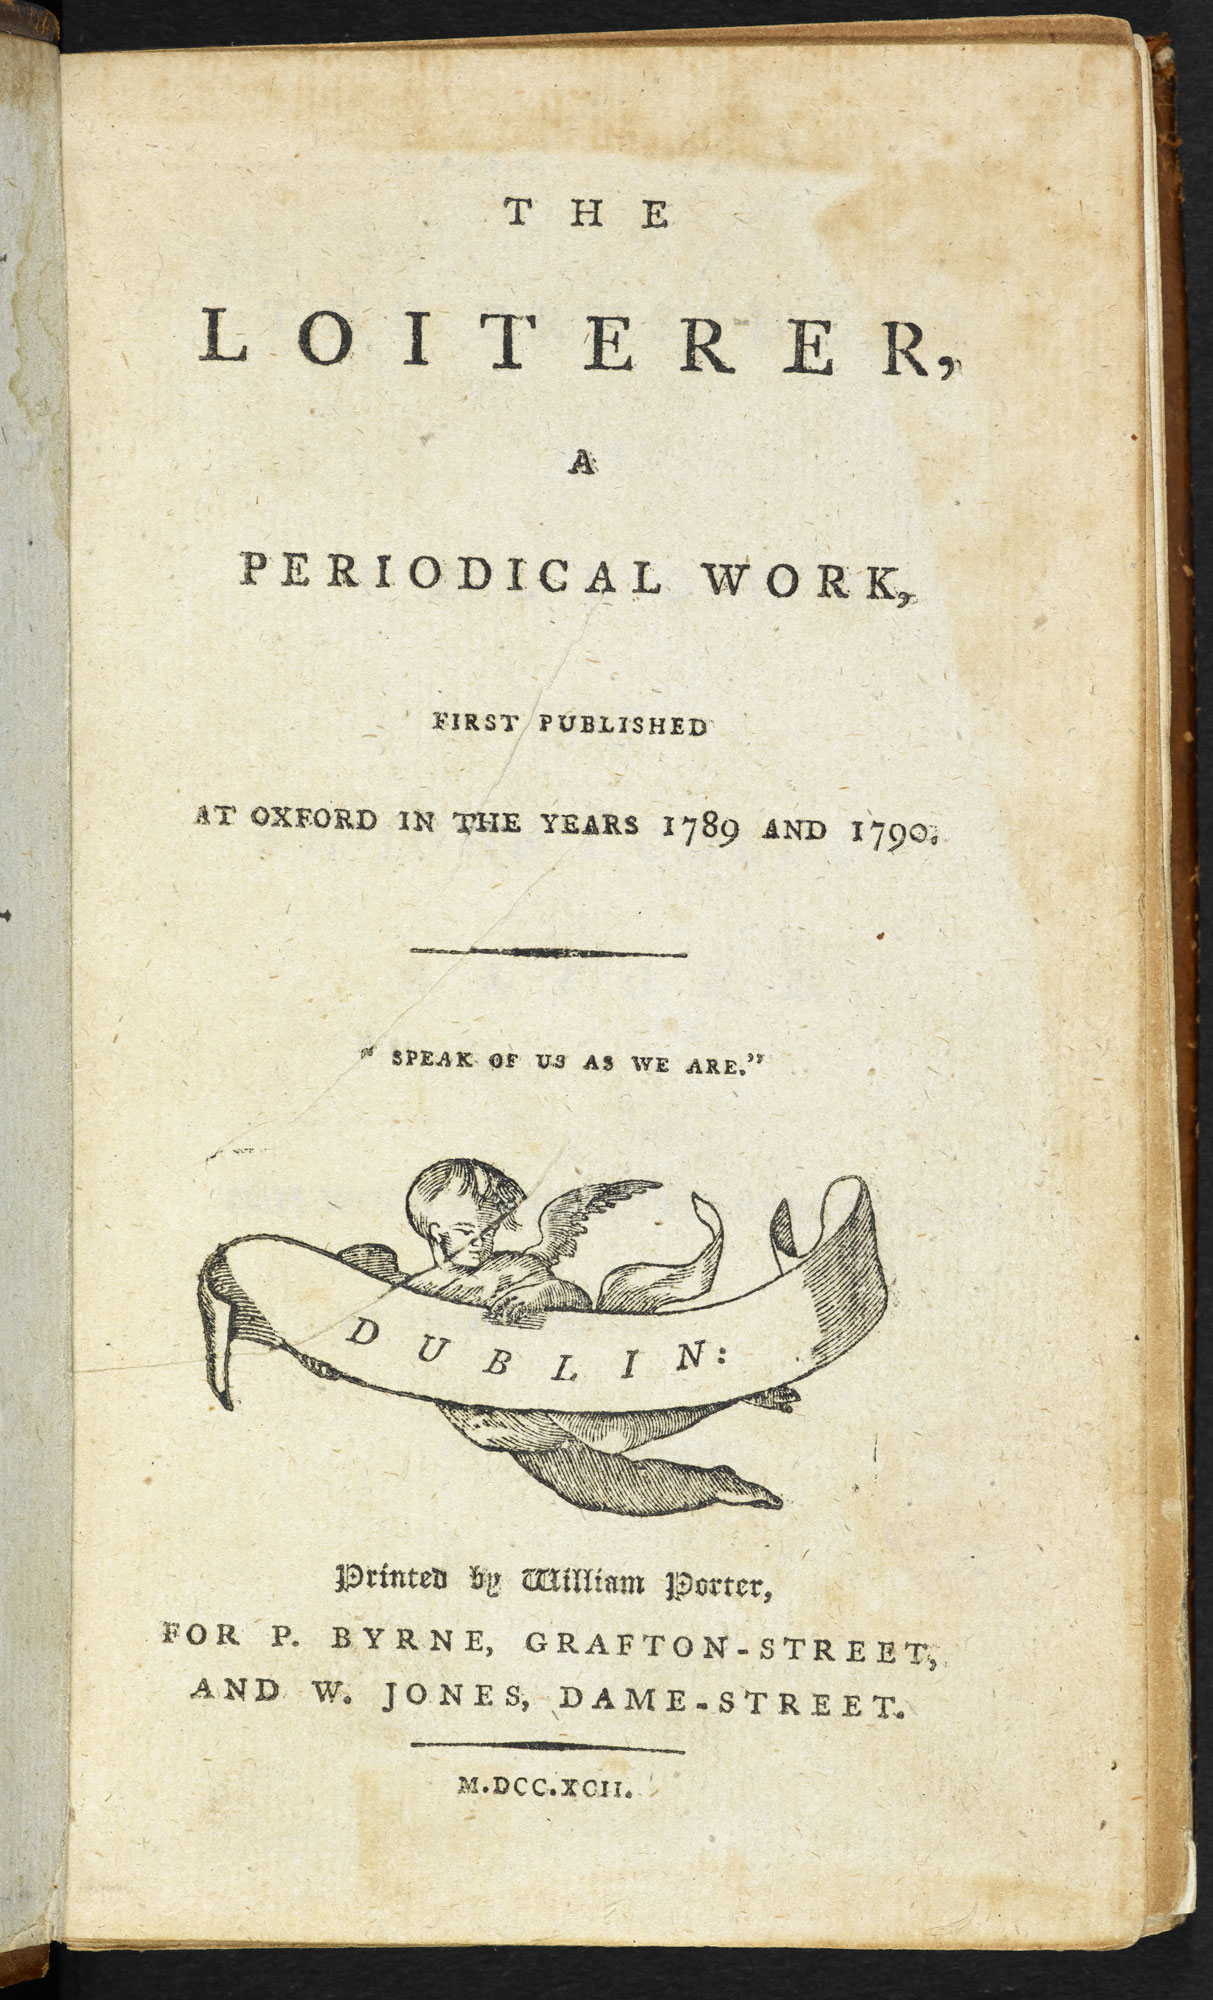 The Loiterer: Periodical written and edited by Jane Austen's brothers [page: title page]